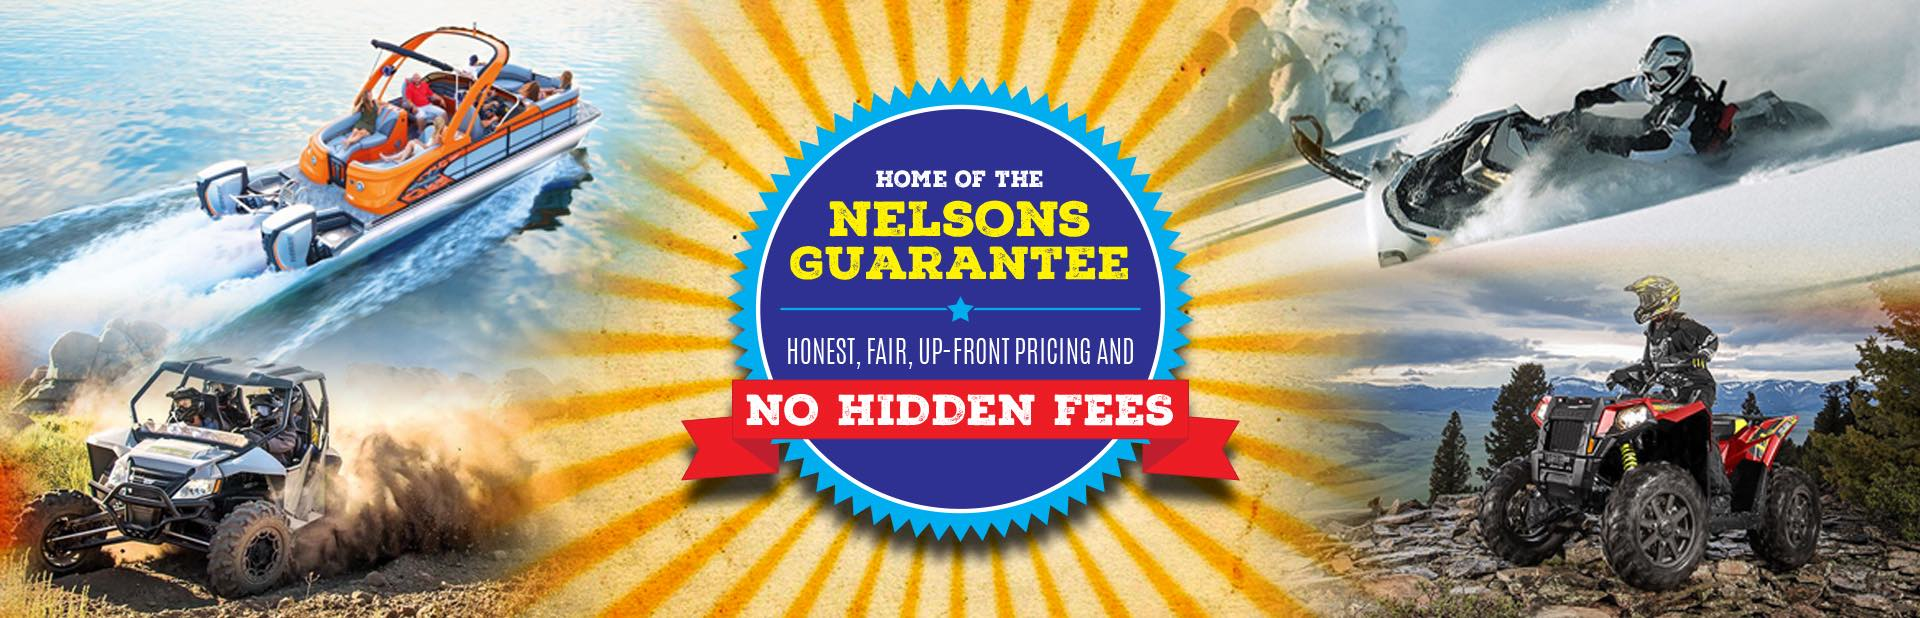 Home of the Nelsons Guarantee: Honest, Fair, Up-Front Pricing and No Hidden Fees